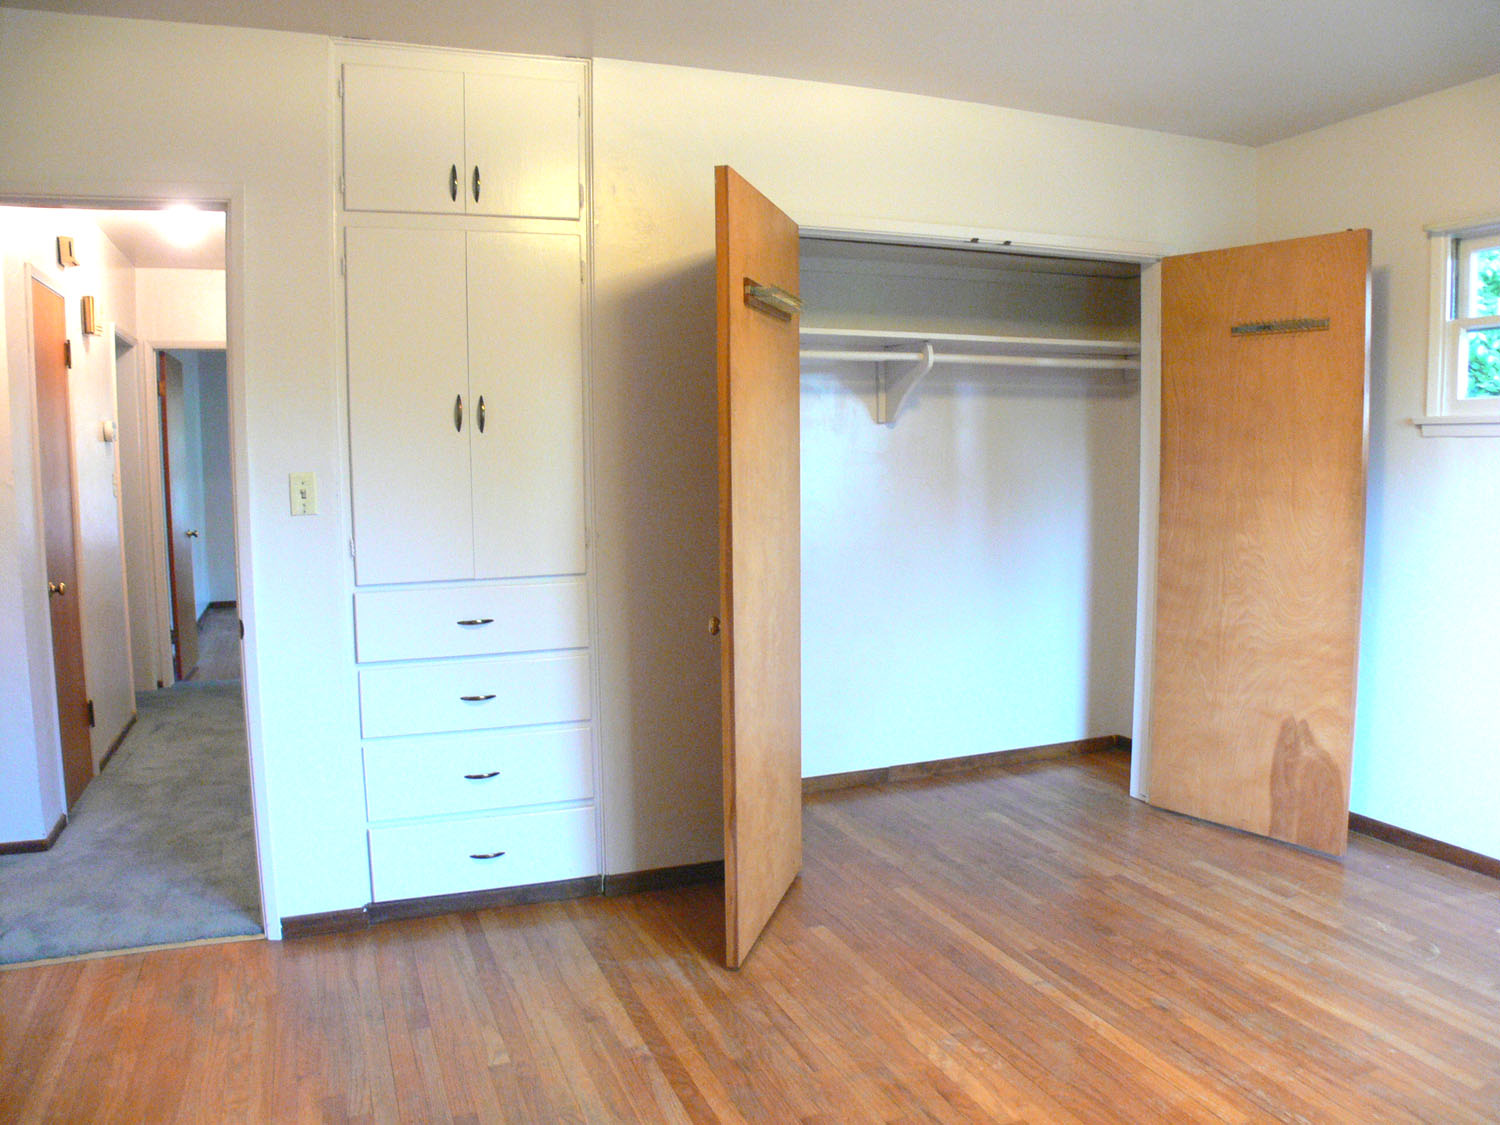 Each of the three bedrooms with hardwood floors hav a large closet and a built-in dresser like the one to the left of this closet!